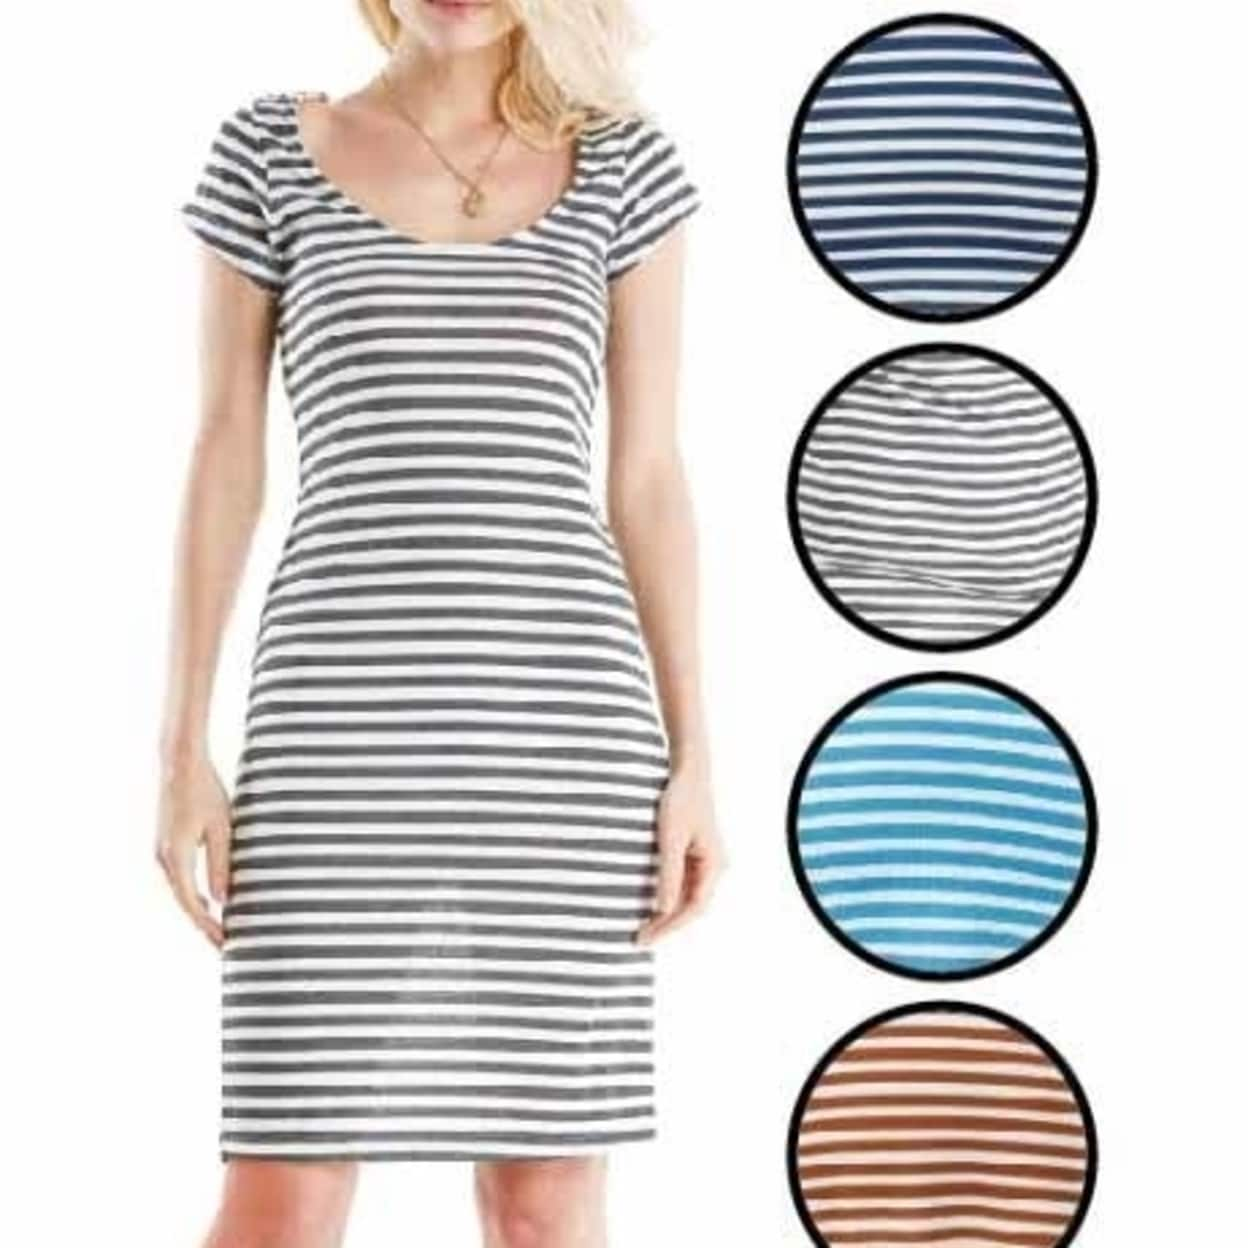 e279eb1c2 Shop DDI 2280700 Women's Short Sleeve Short Dresses - Striped Prints - Sizes  M-XL Case of 72 - Free Shipping Today - Overstock - 27875146